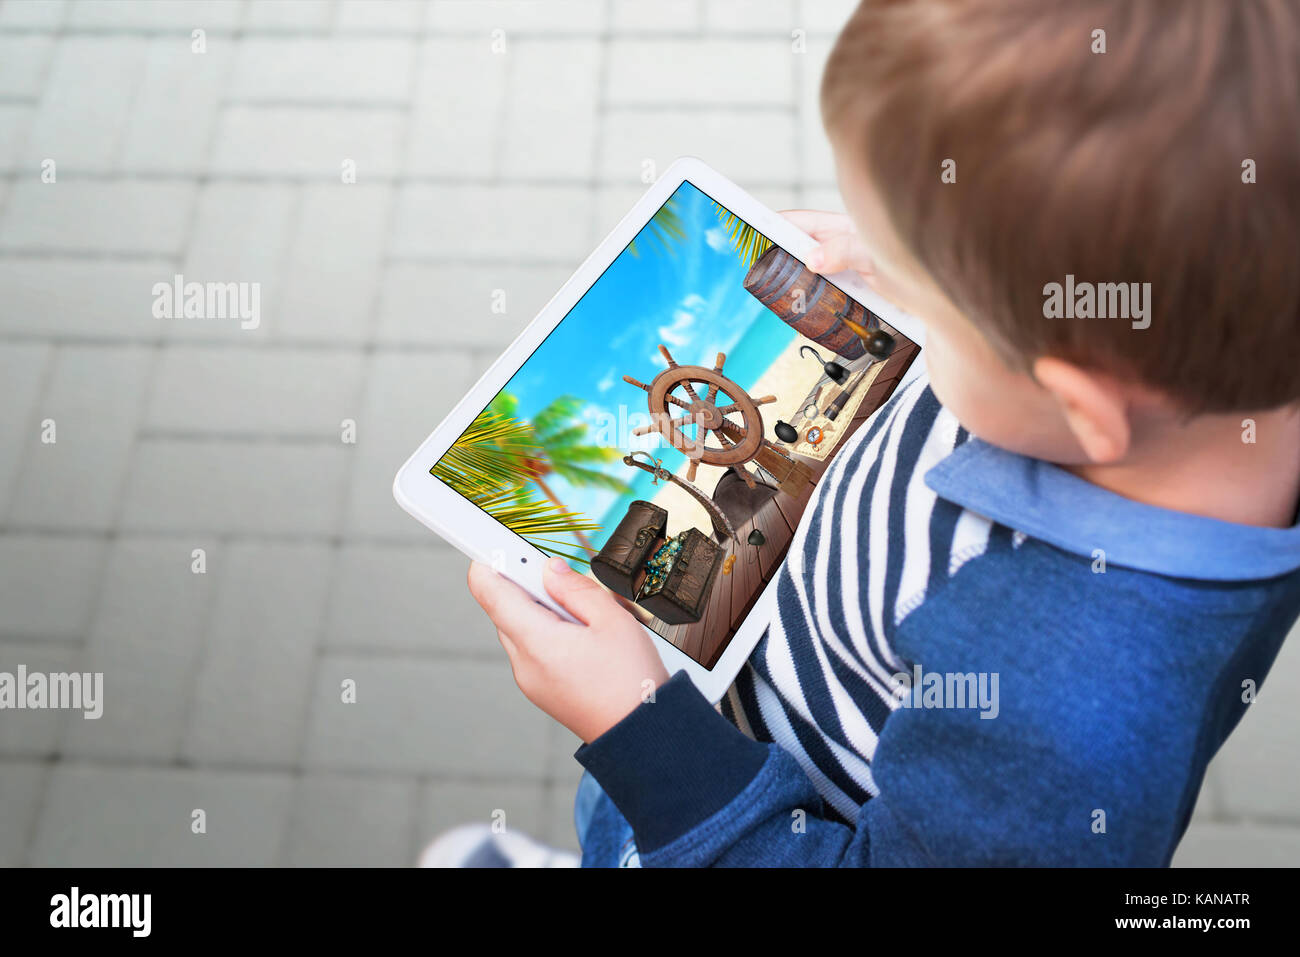 Boy Watching Video On A Tablet Scene Represents The Addiction Of Stock Photo Alamy